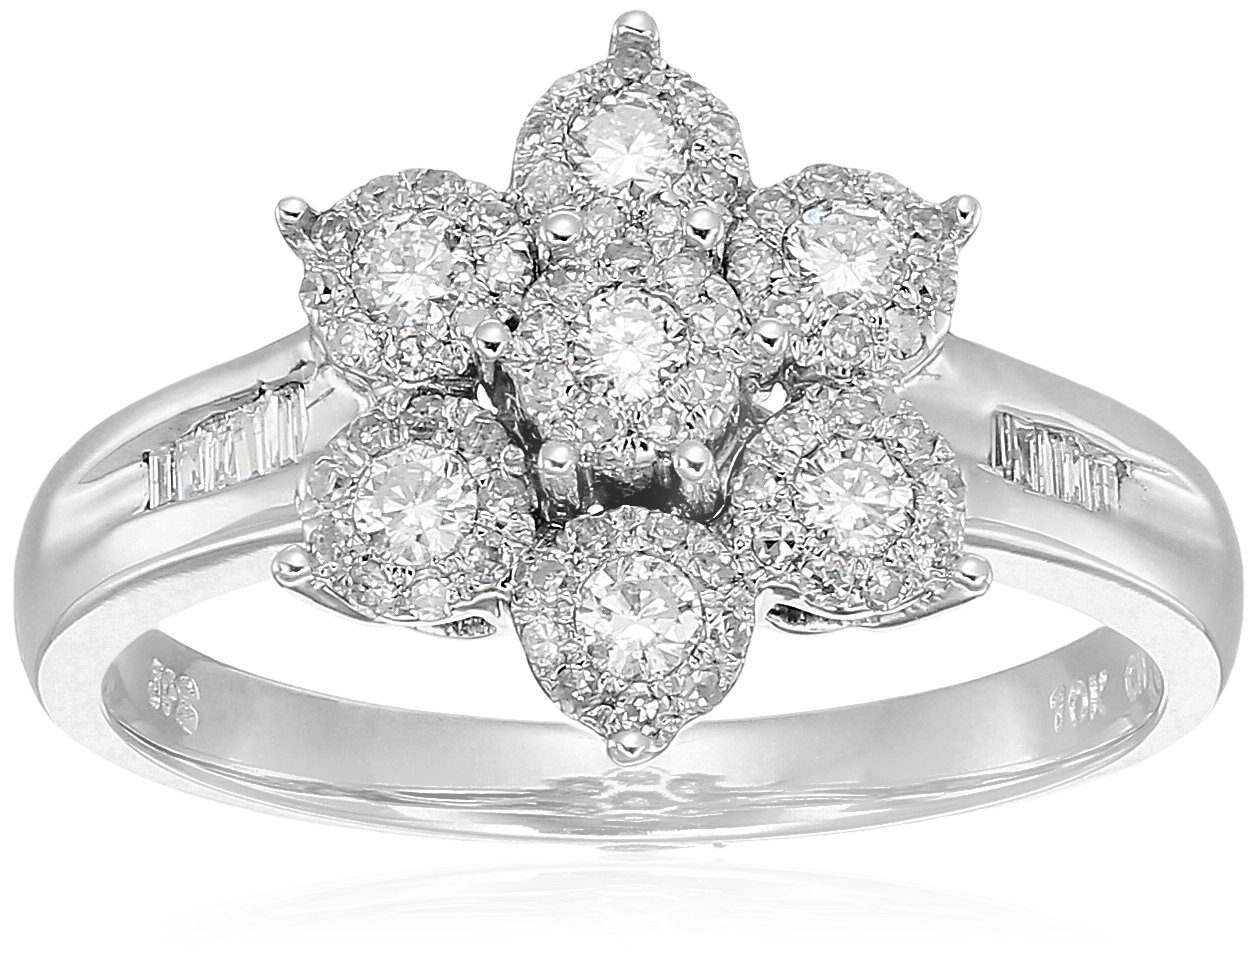 10K White Gold Cluster Flower Diamond Ring (1/2 cttw, H-I Color, I2 Clarity), Size 7